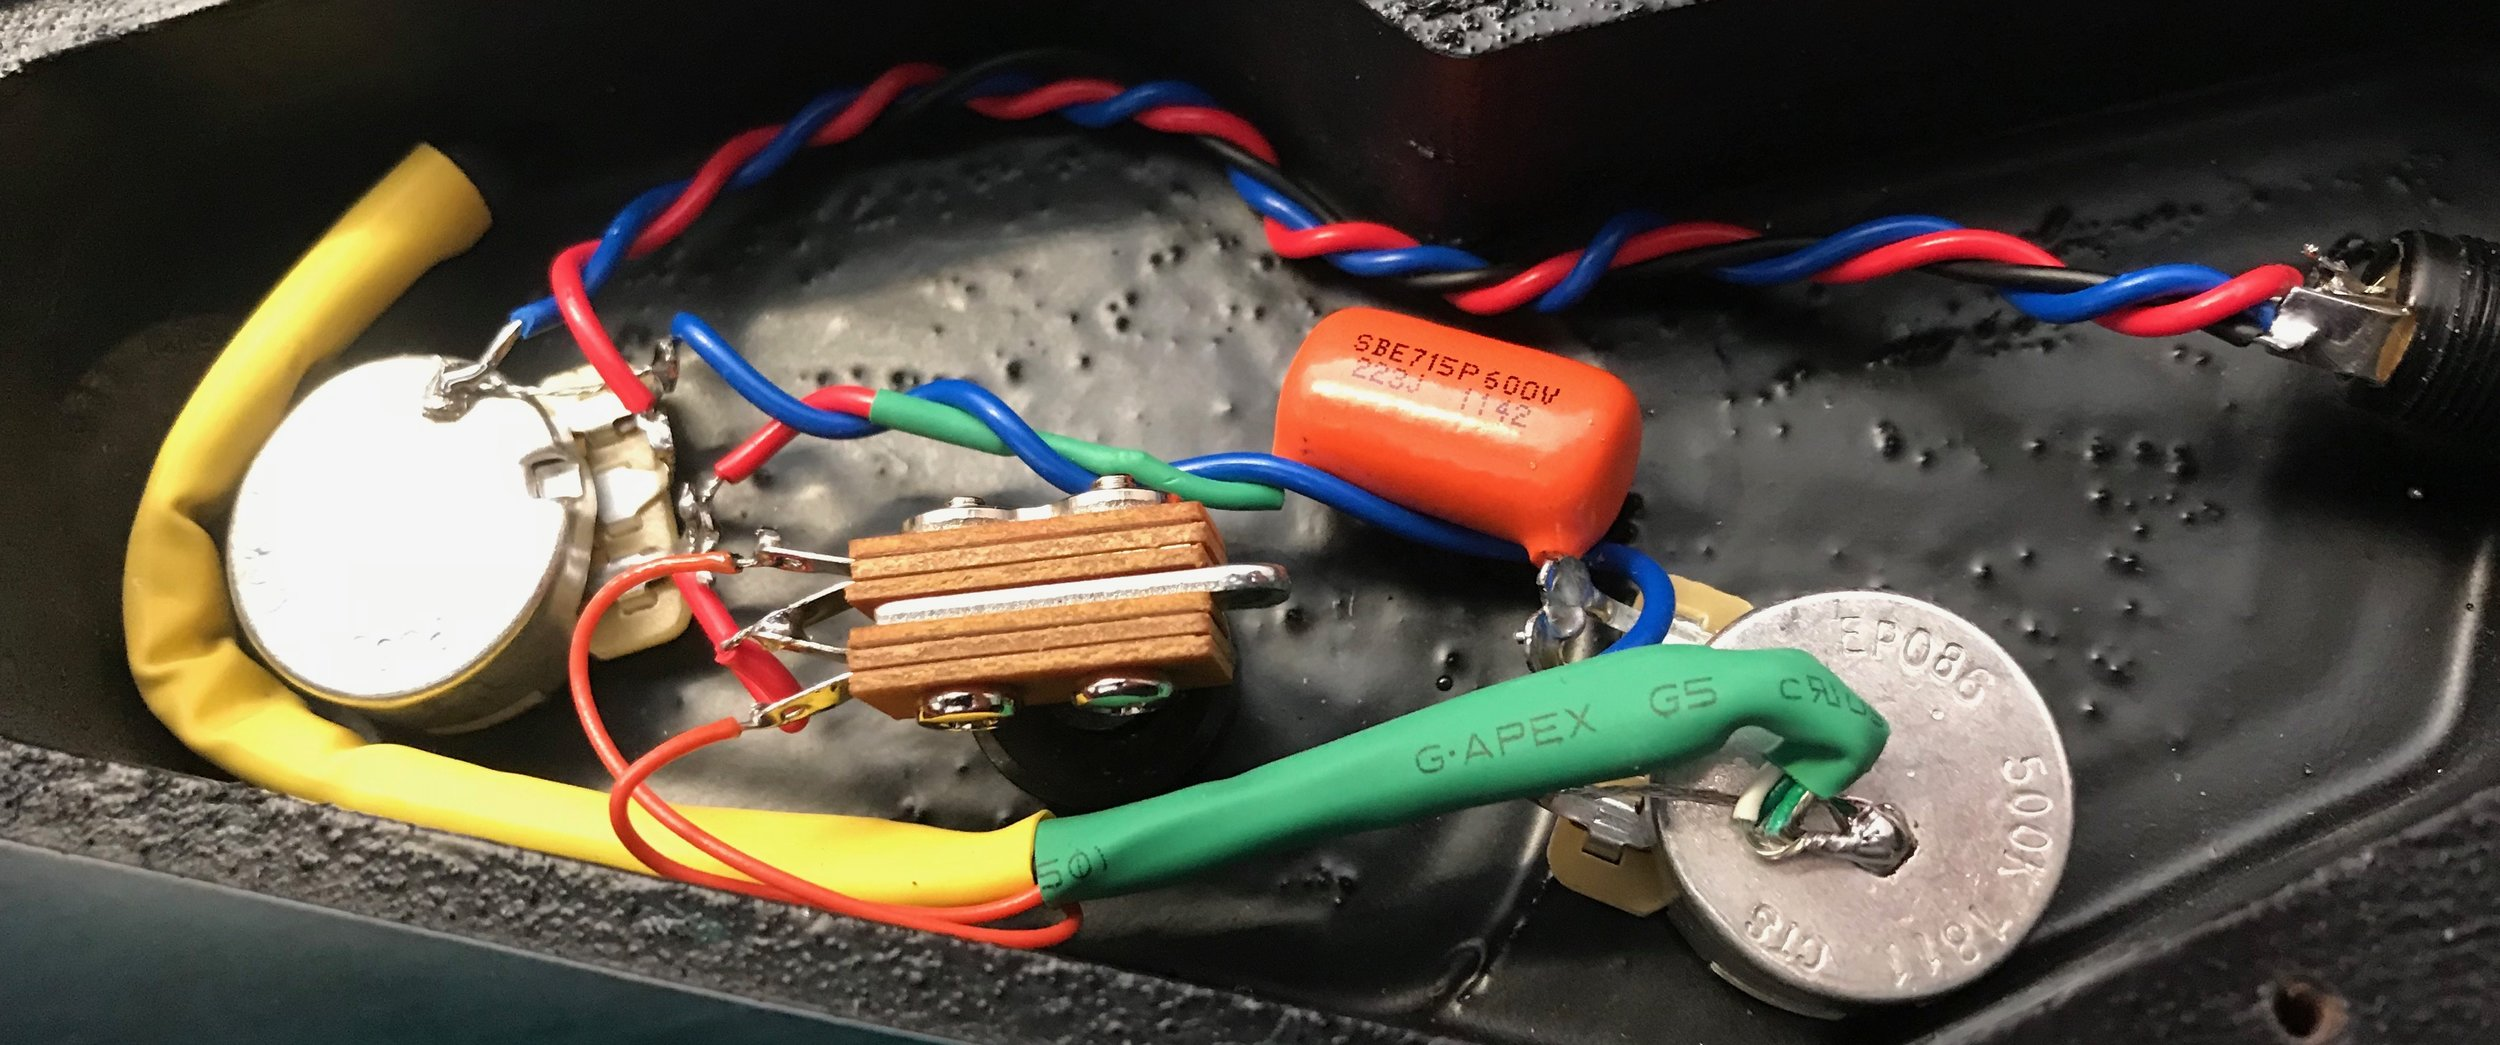 Neat wiring that works   From a simple restring and setup to a whole guitar overhaul, we can cater to most of your needs, in store, at a sensible price.    Please call us on 0430498051 for a quote to service or repair your guitar or simply drop in with your guitar for a chat.    Adam Harrison